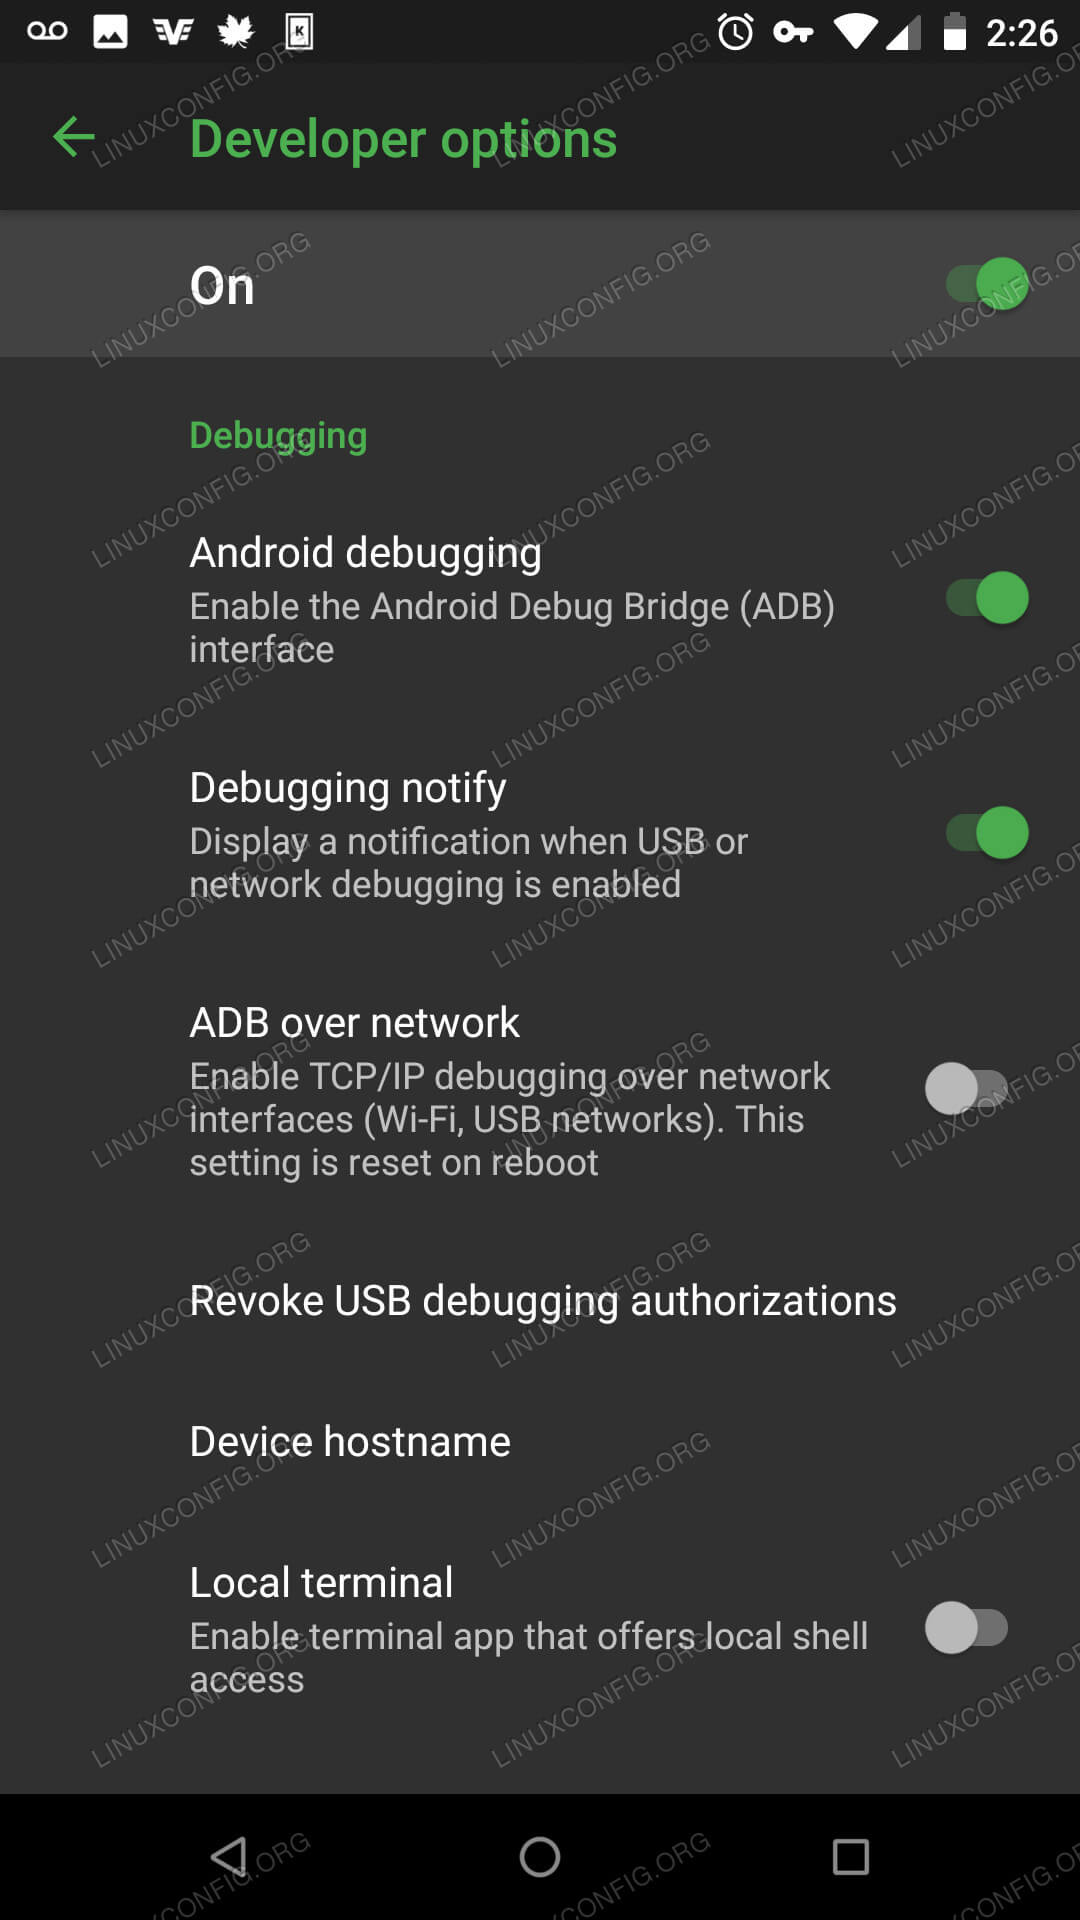 Developer Options on Android